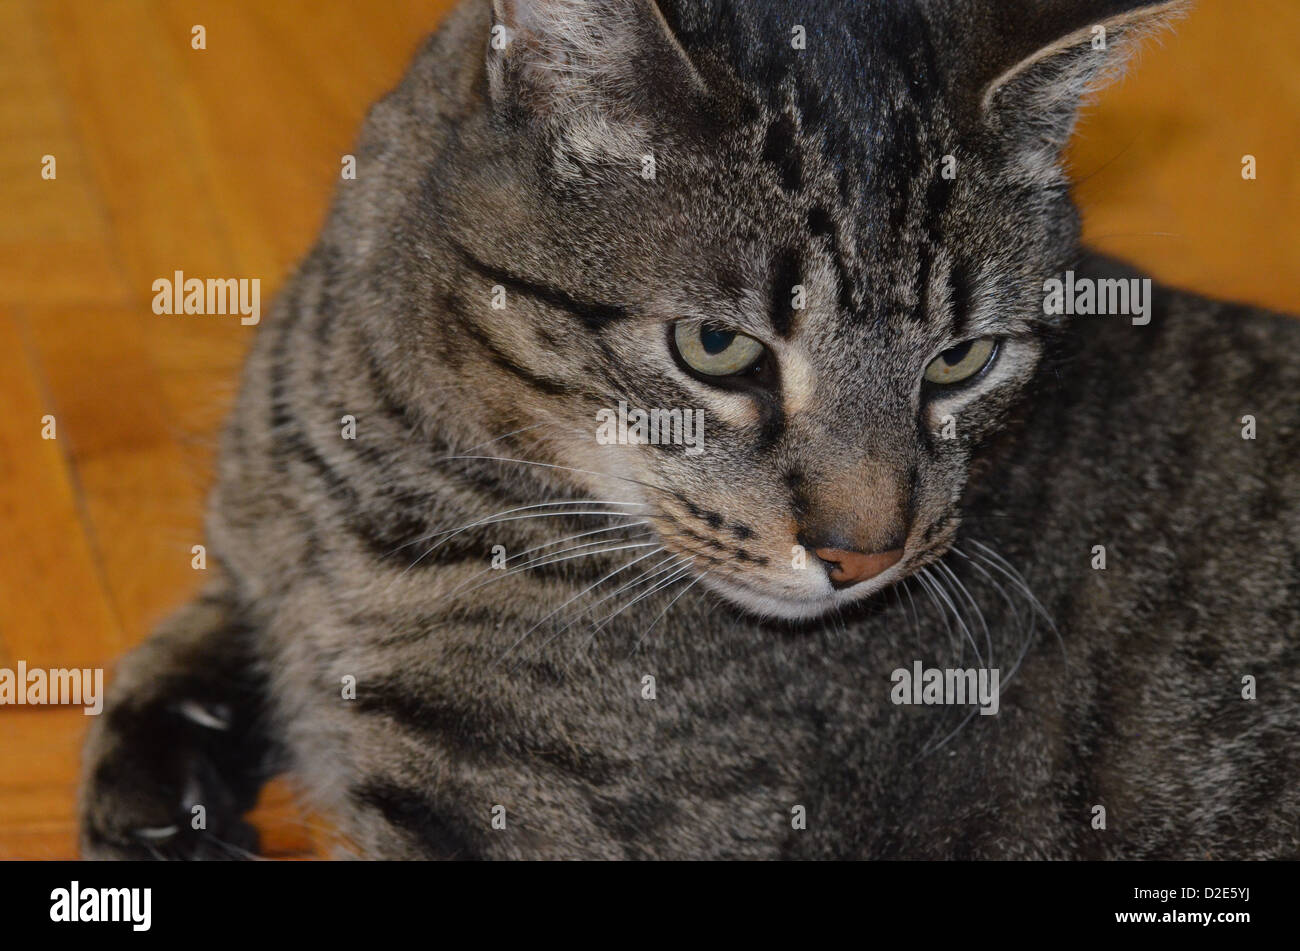 cat with claw ready - Stock Image